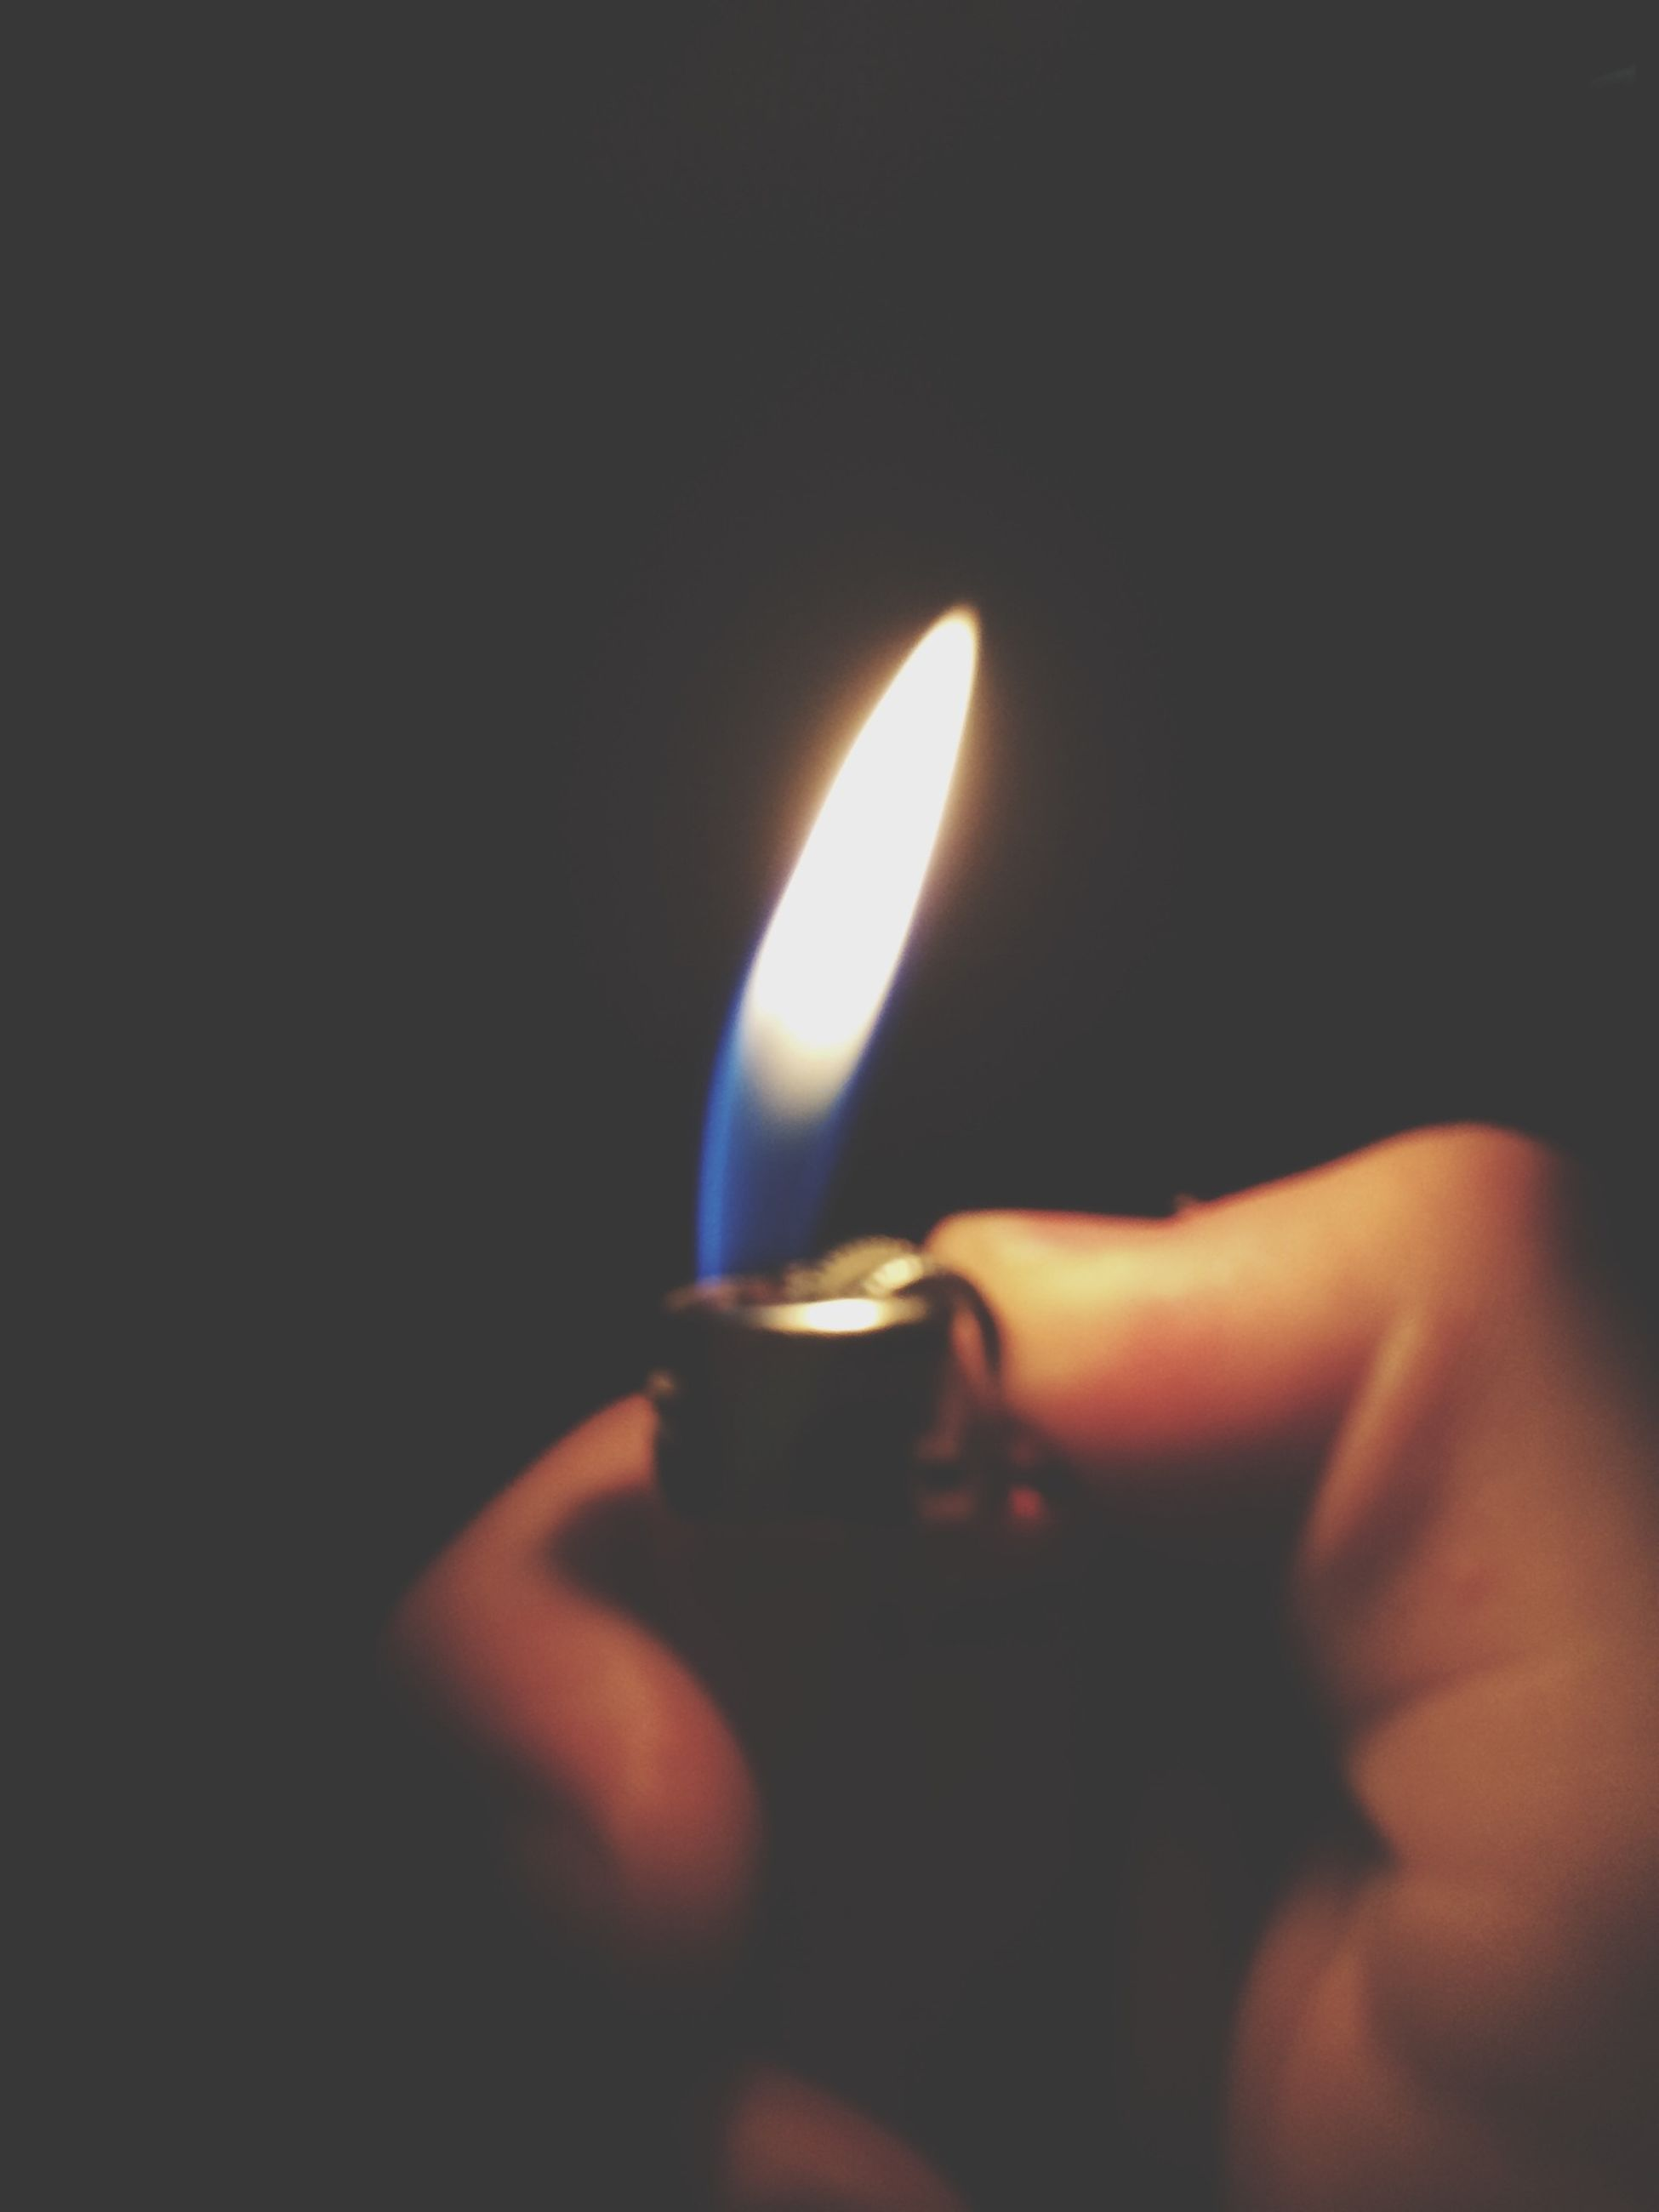 person, indoors, holding, burning, part of, flame, human finger, close-up, cropped, heat - temperature, unrecognizable person, studio shot, fire - natural phenomenon, black background, illuminated, candle, glowing